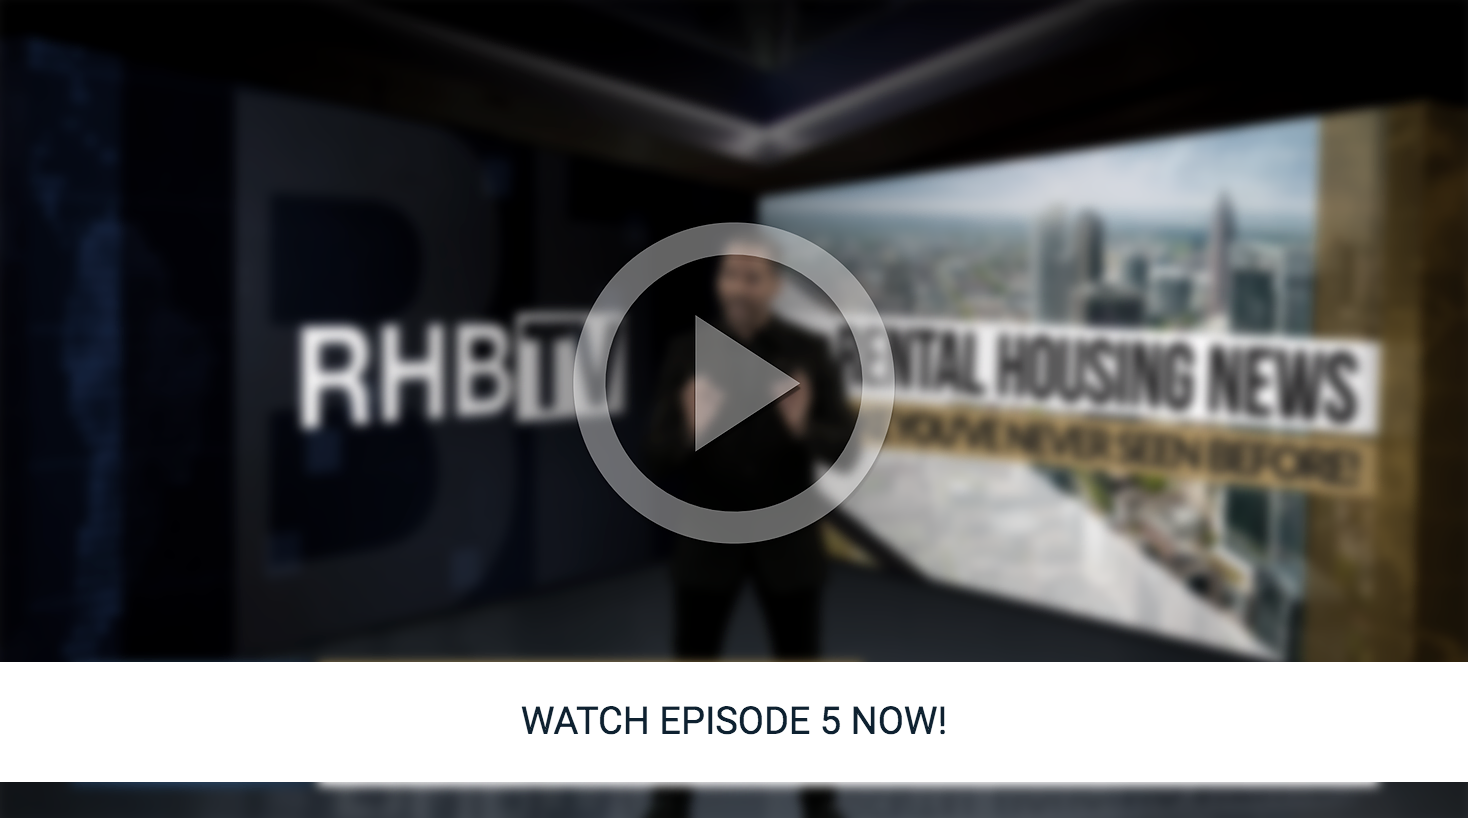 RHB TV EPISODE 5 IS NOW LIVE!